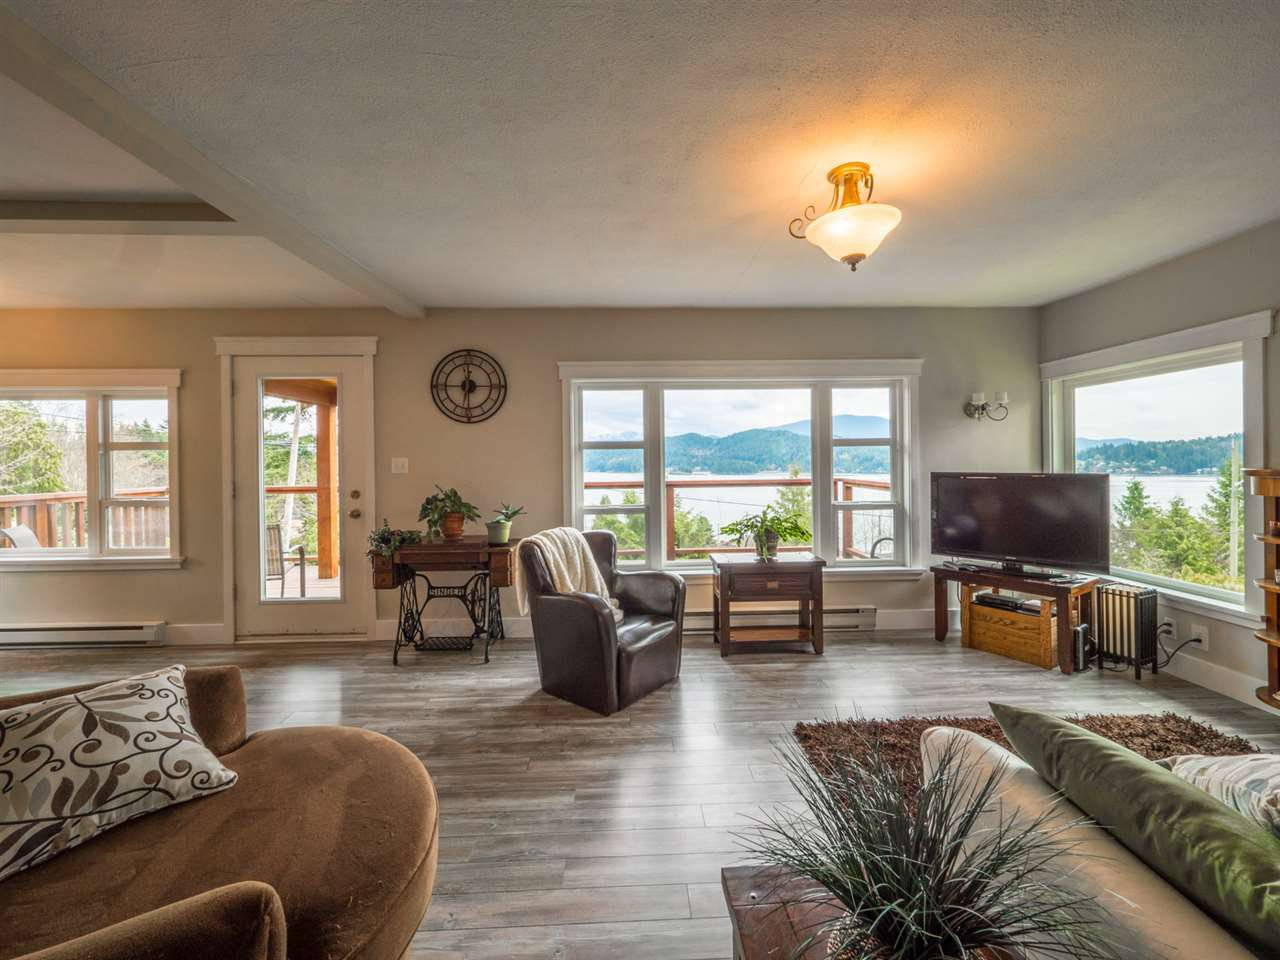 Photo 9: Photos: 588 N FLETCHER Road in Gibsons: Gibsons & Area House for sale (Sunshine Coast)  : MLS®# R2254074